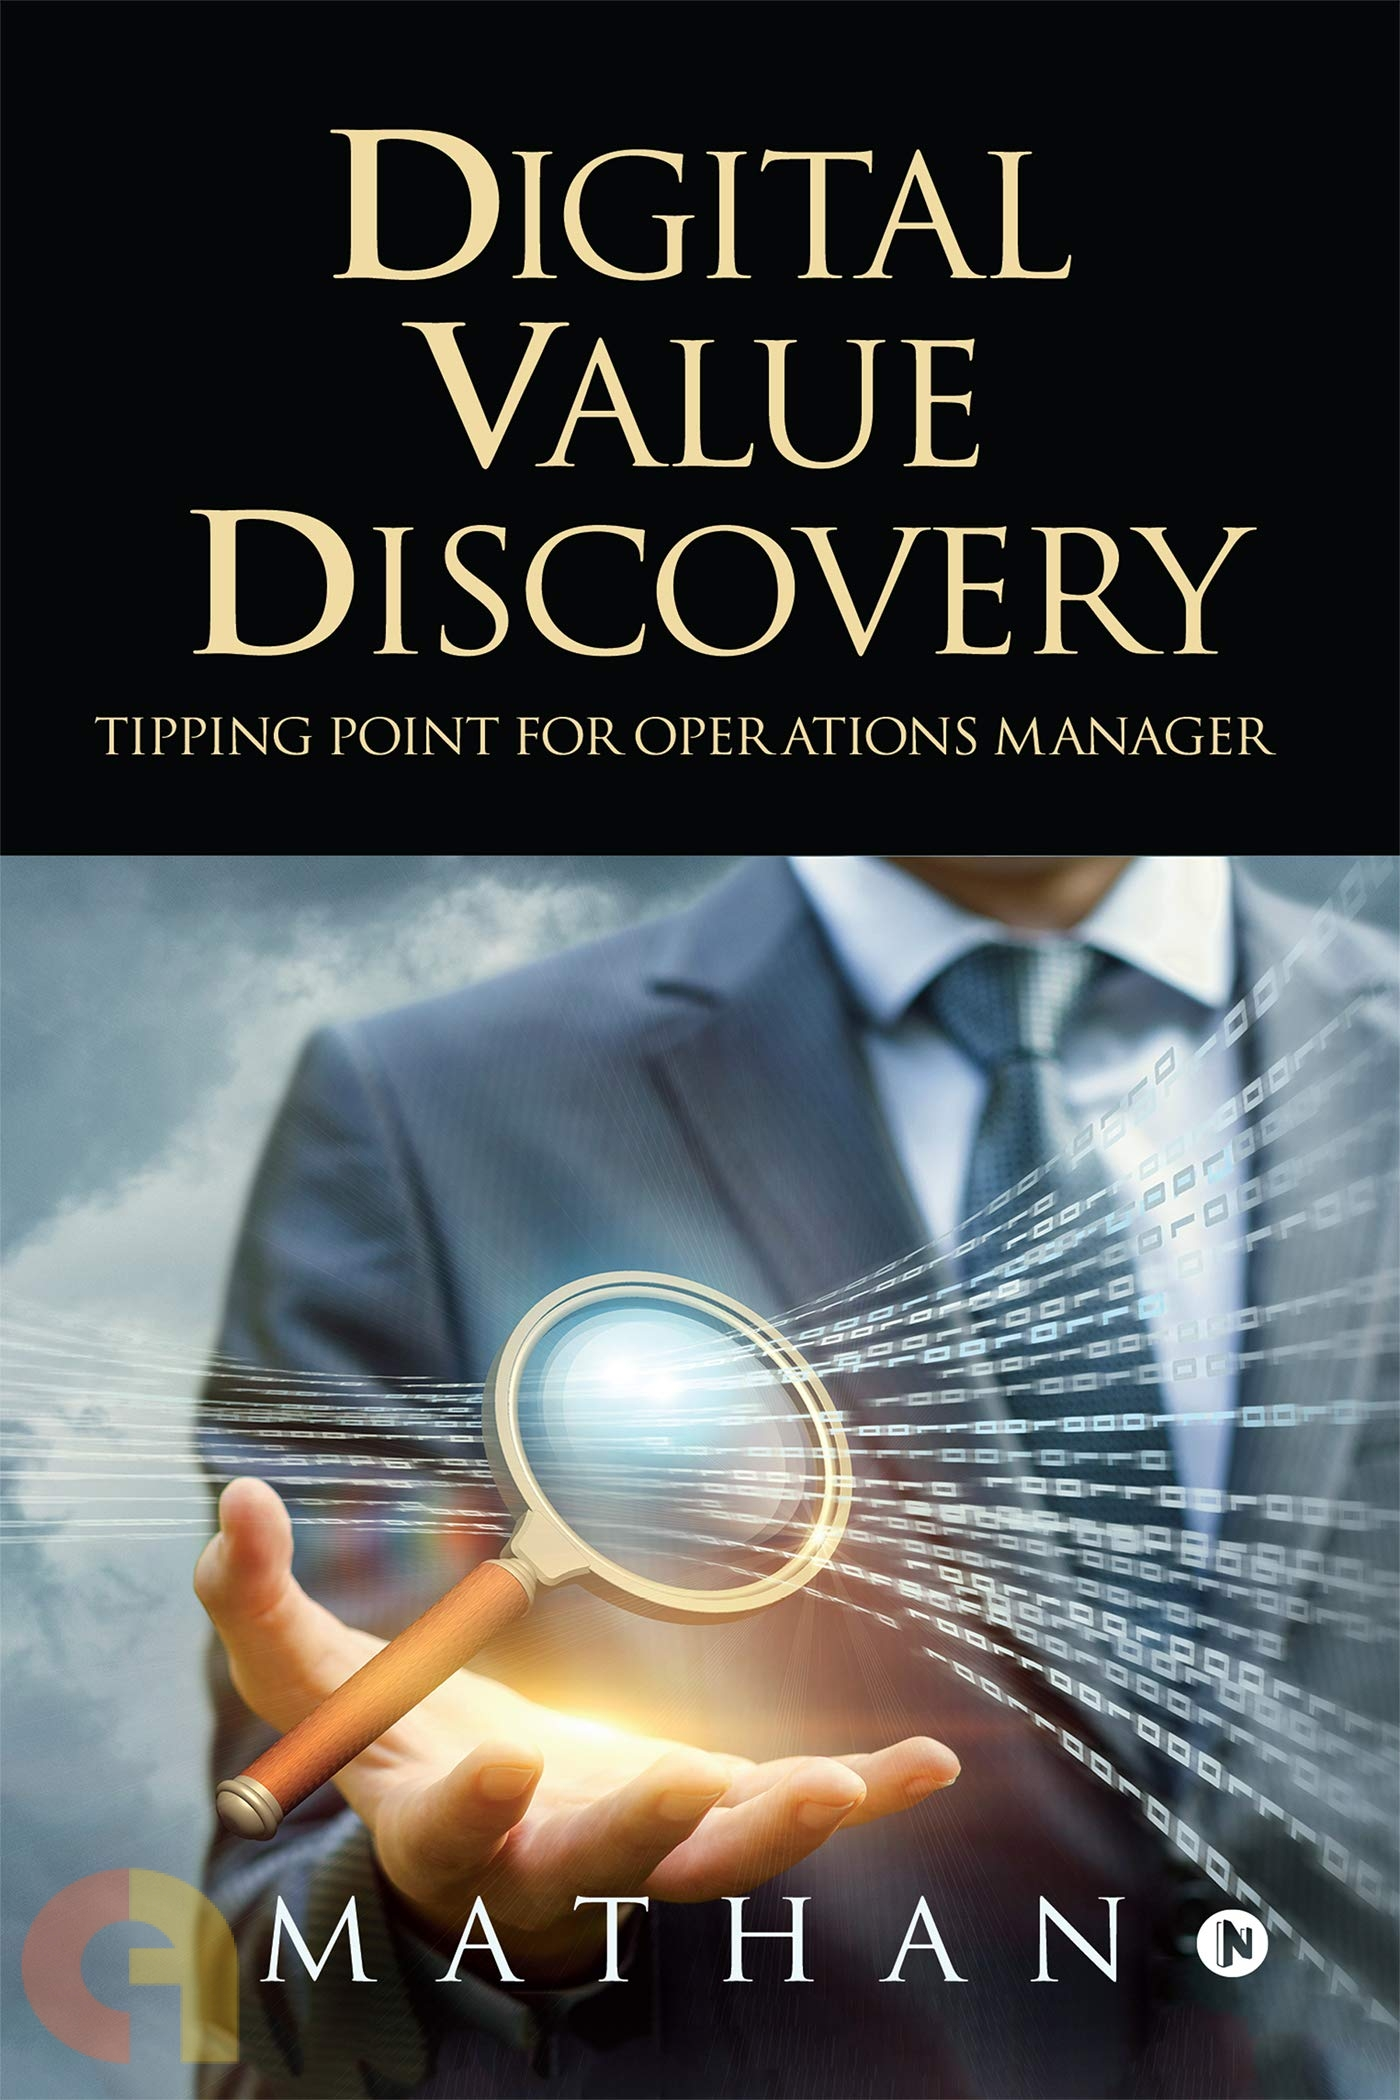 Digital Value Discovery